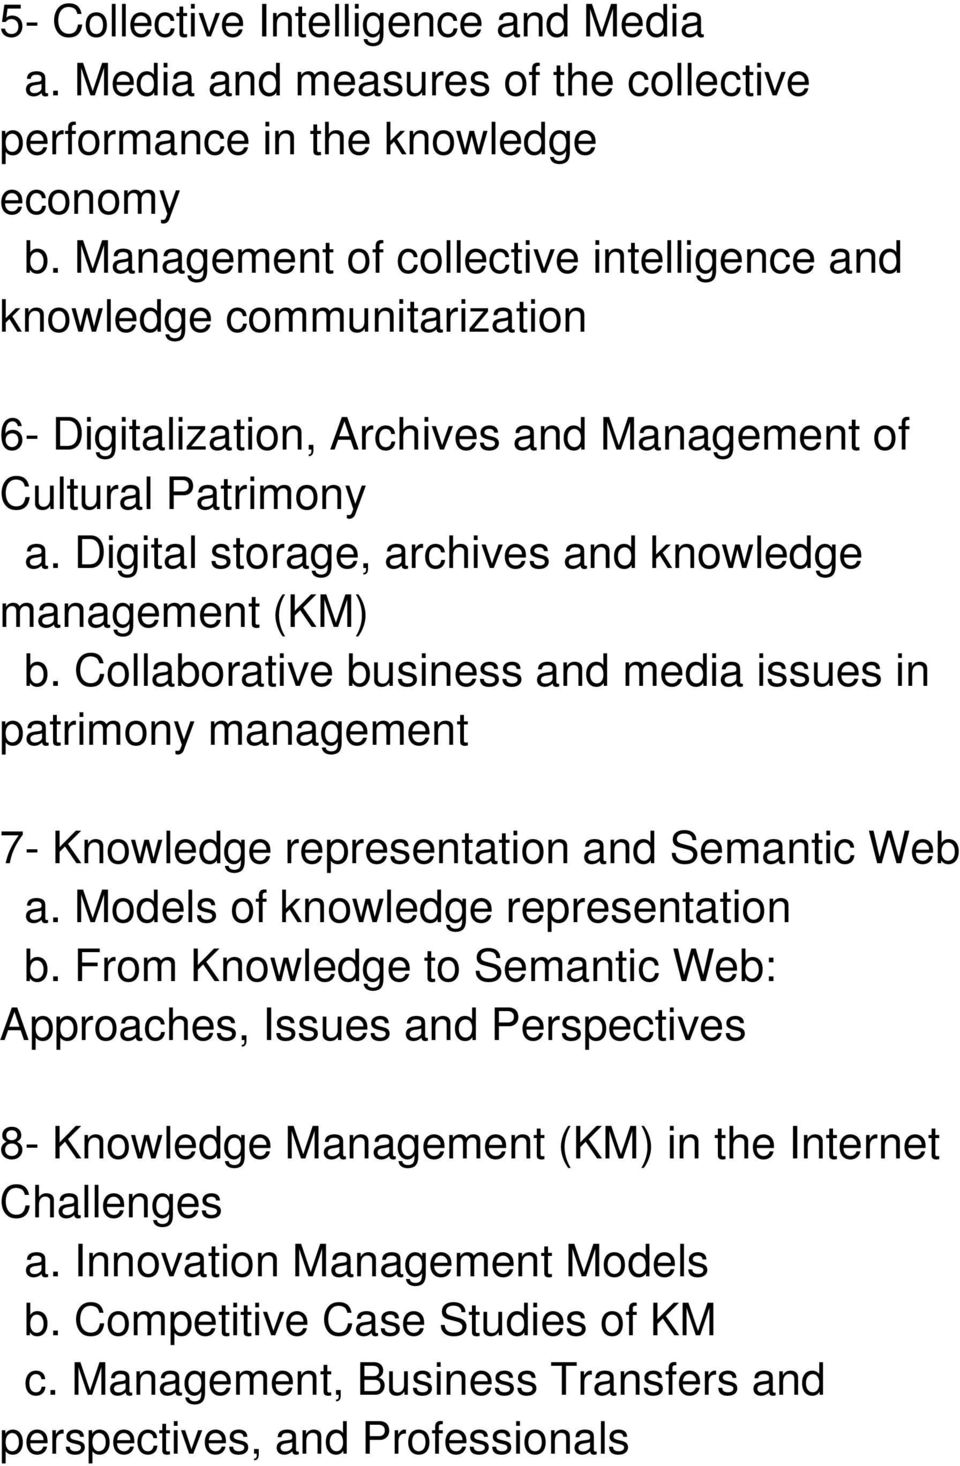 Digital storage, archives and knowledge management (KM) b. Collaborative business and media issues in patrimony management 7- Knowledge representation and Semantic Web a.